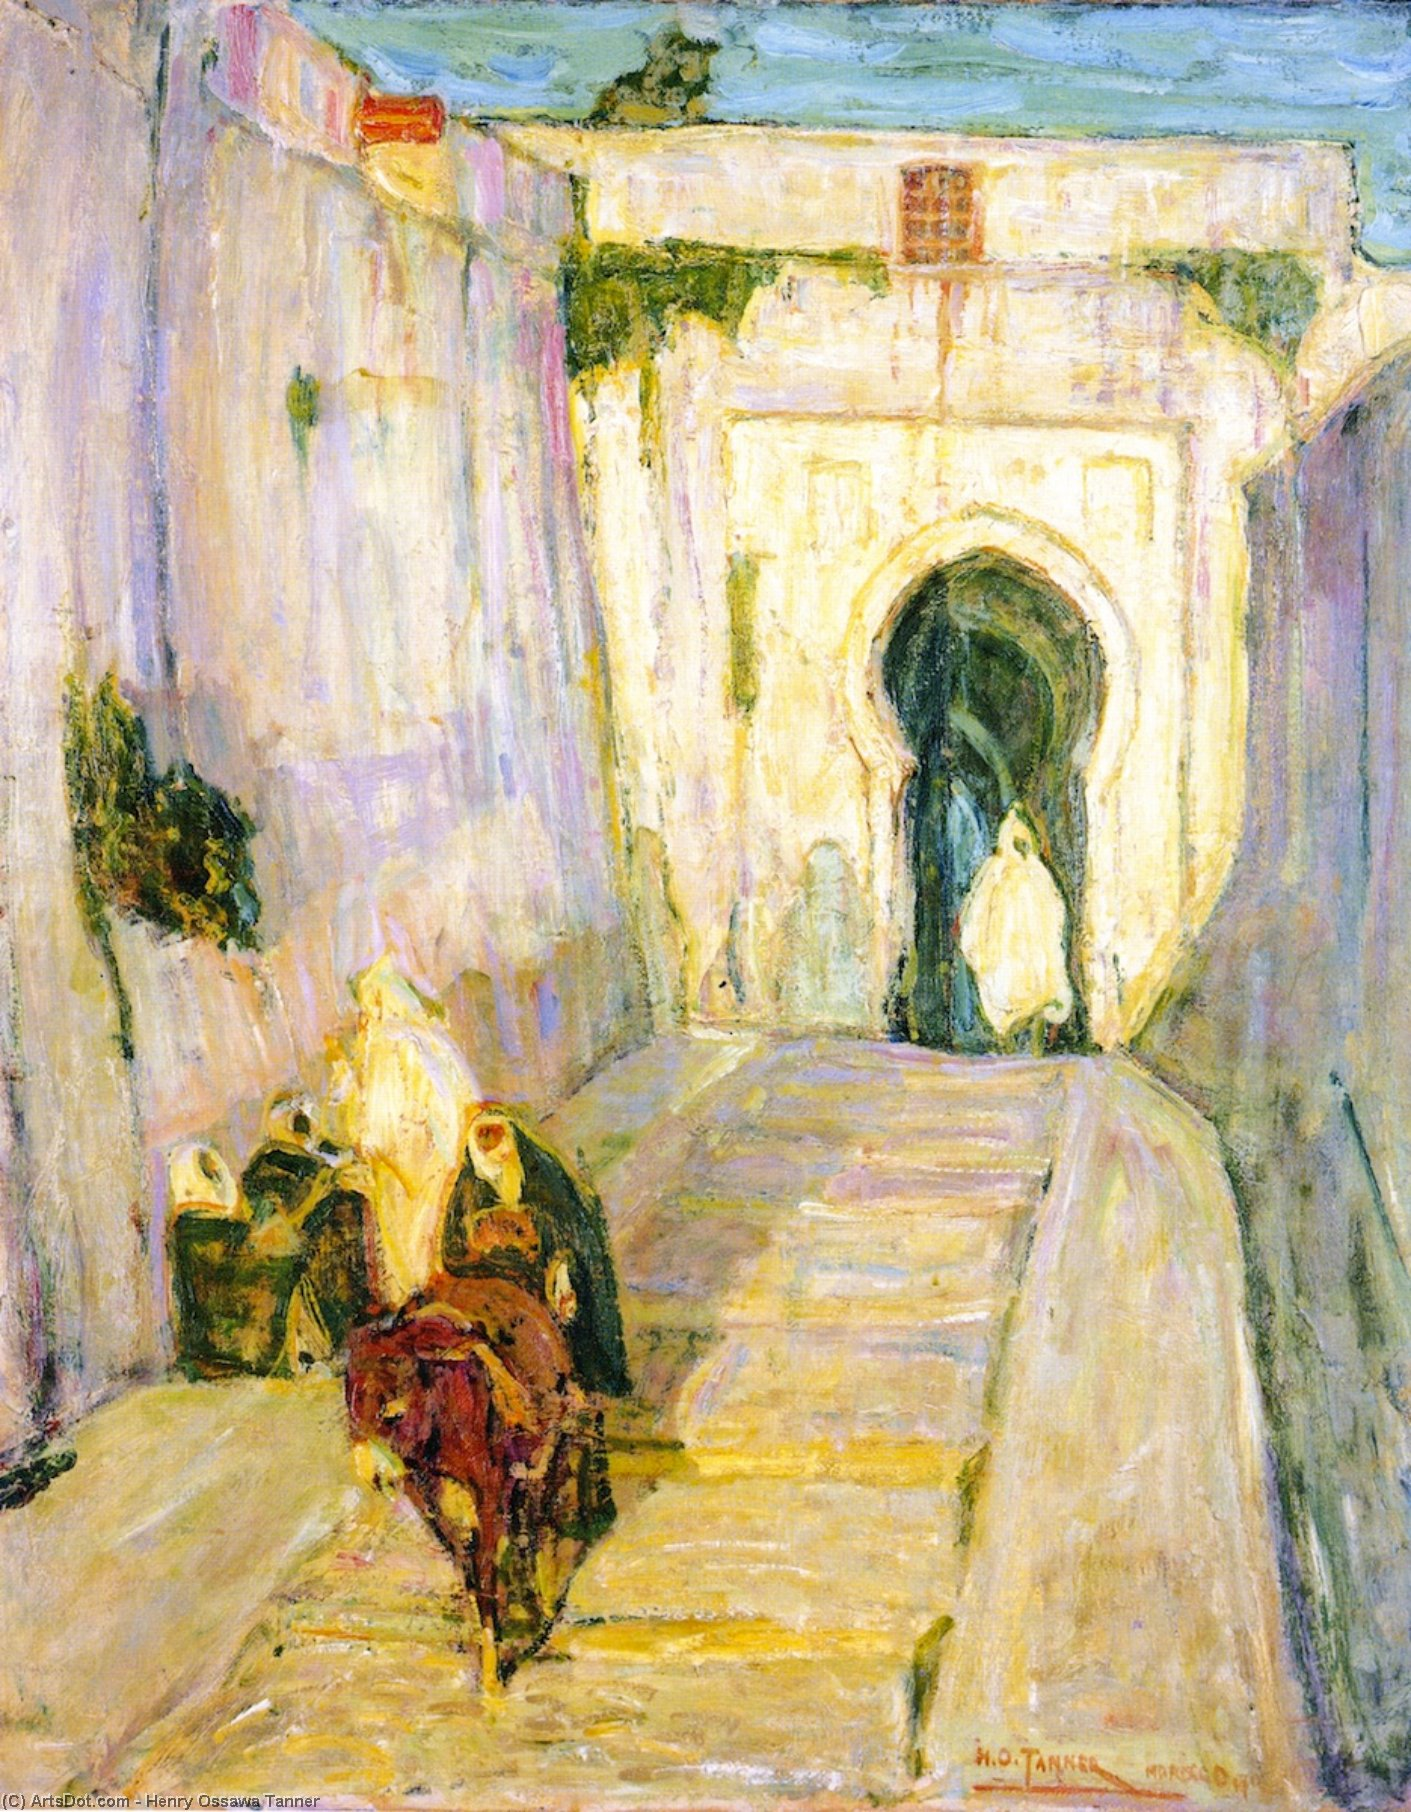 Entrance to the Casbah, Painting by Henry Ossawa Tanner (1859-1937, United States)